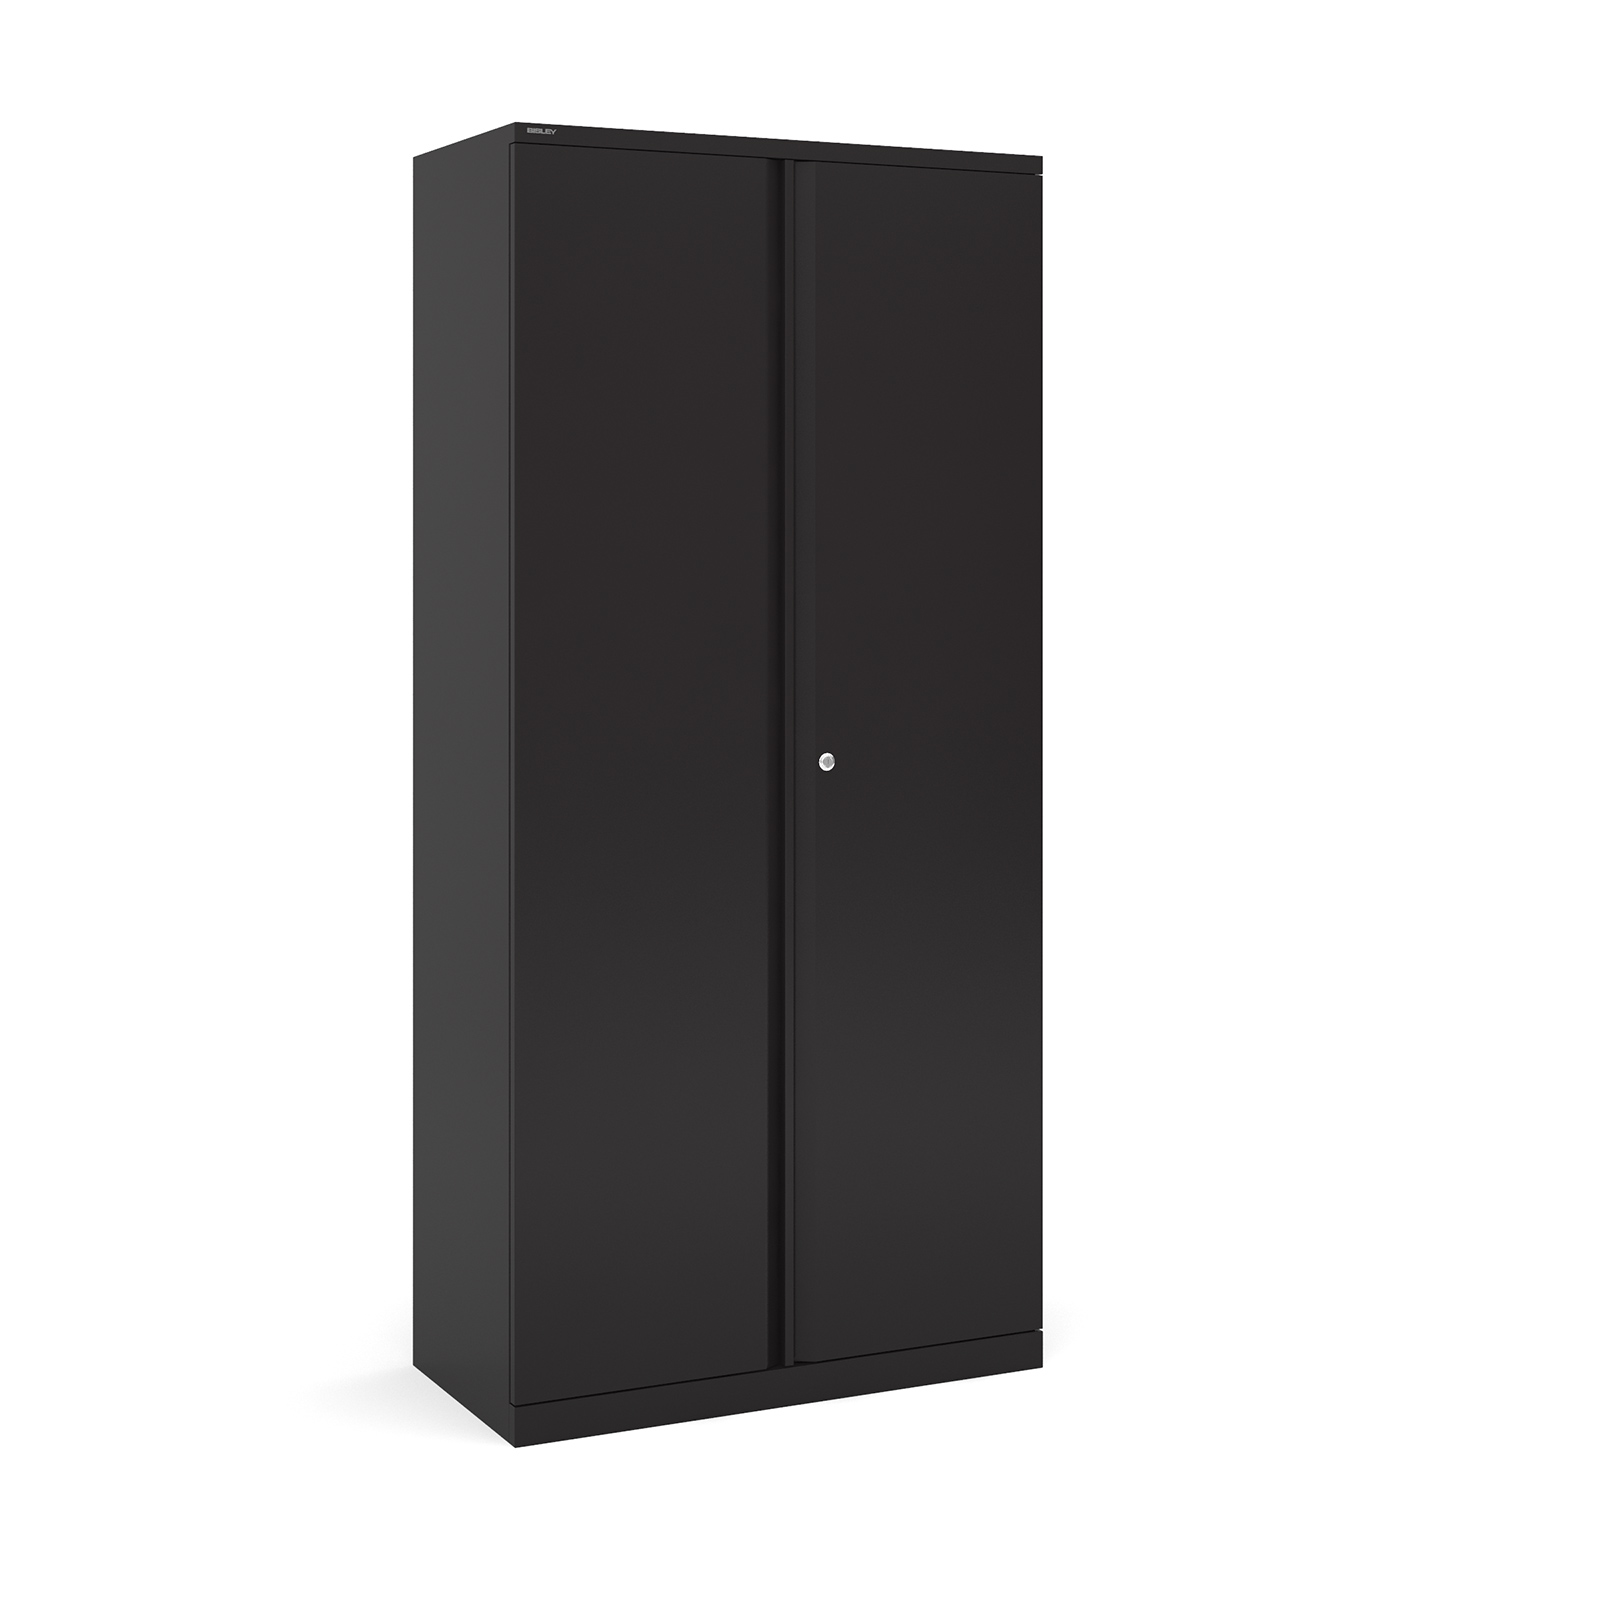 Bisley systems storage high cupboard 1970mm high - black